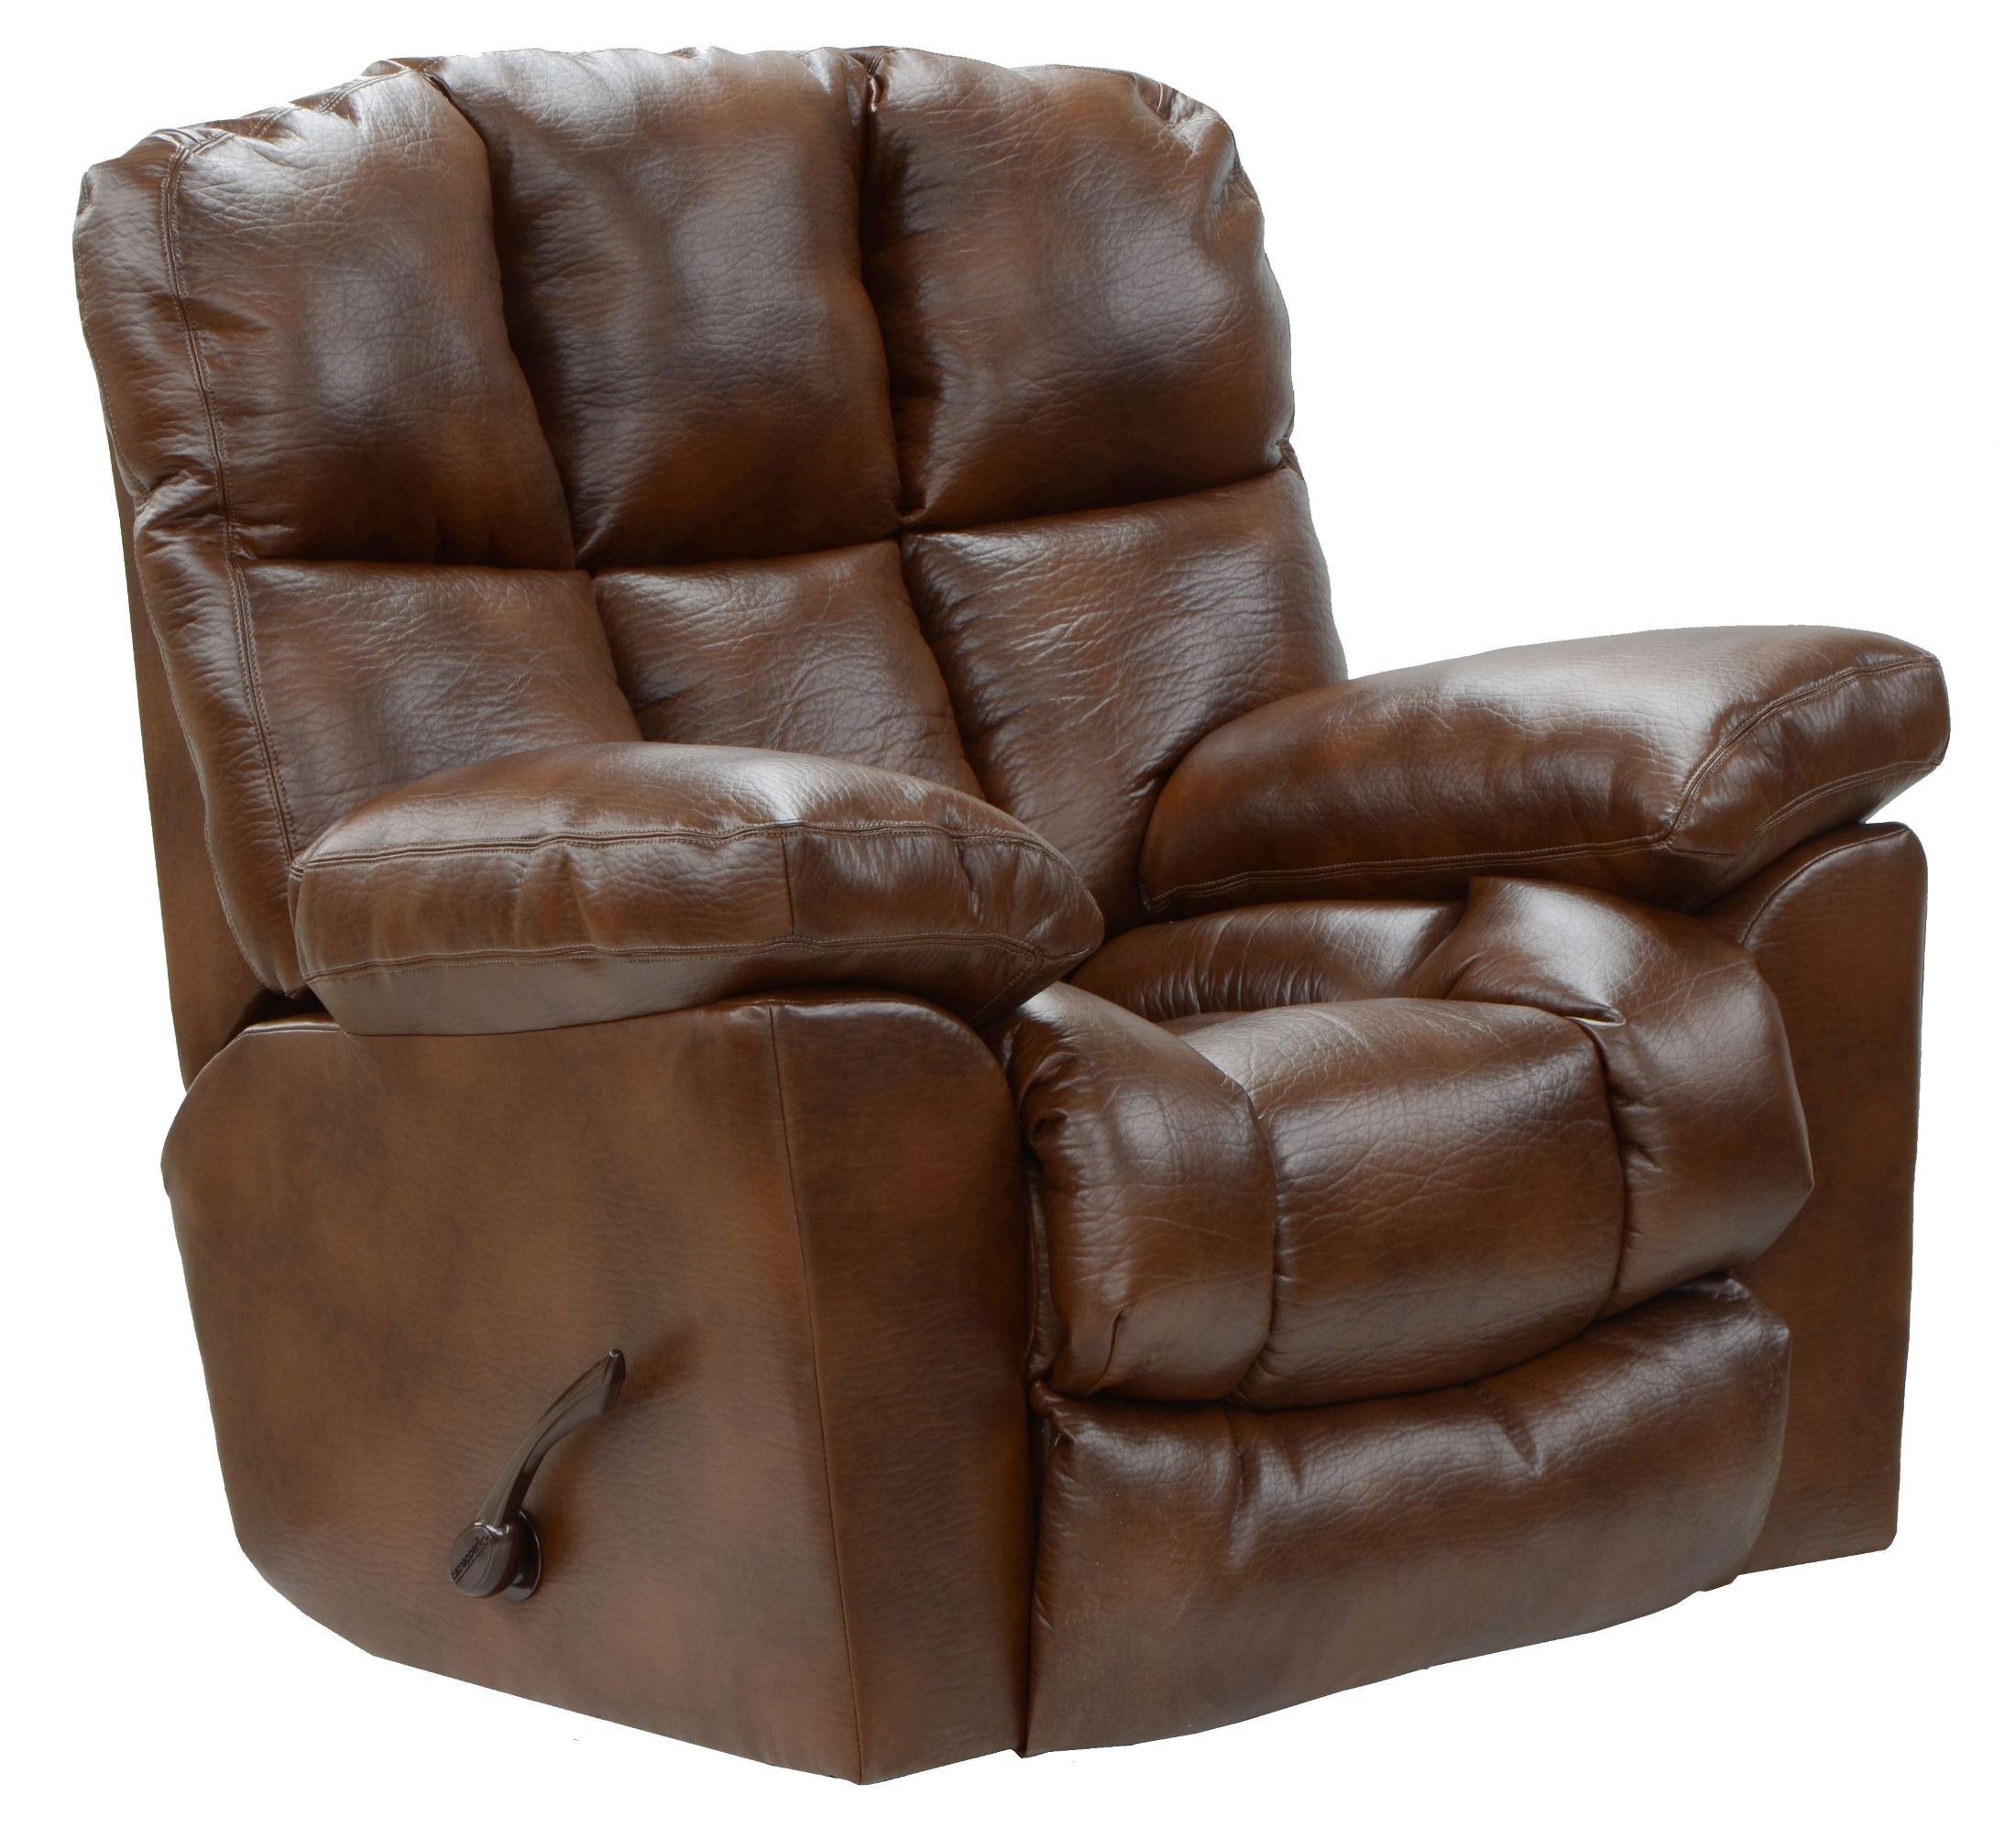 Griffey tobacco bonded leather chaise rocker recliner from for Catnapper cloud nine chaise recliner